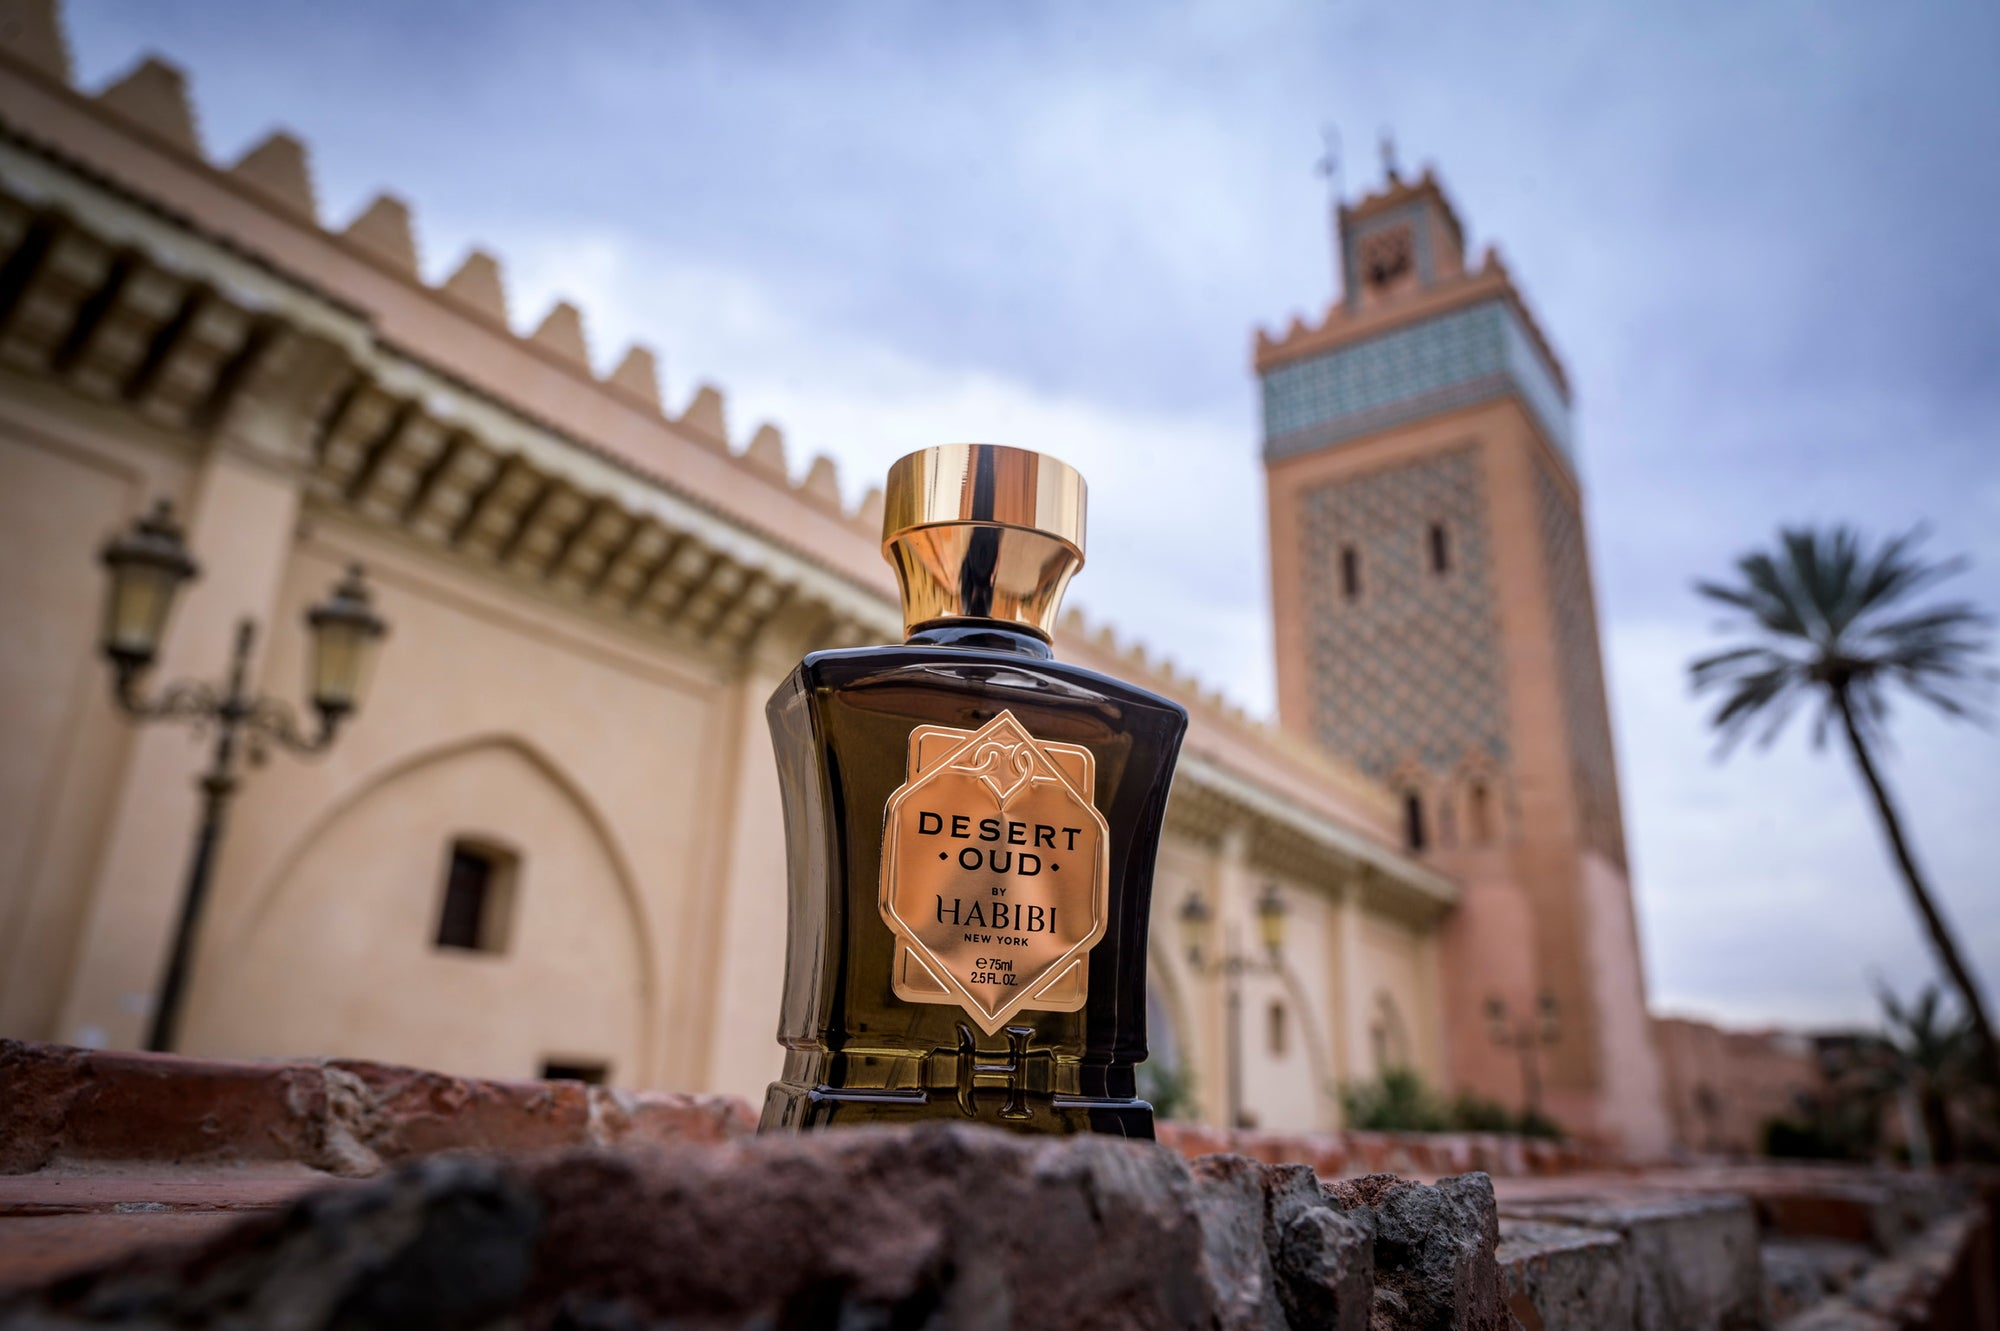 Desert Oud is Habibi's oud cologne targeted towards men of all ages but suitable for any fan of rich woody notes, spices, tobacco, and subtle fruit and green notes.